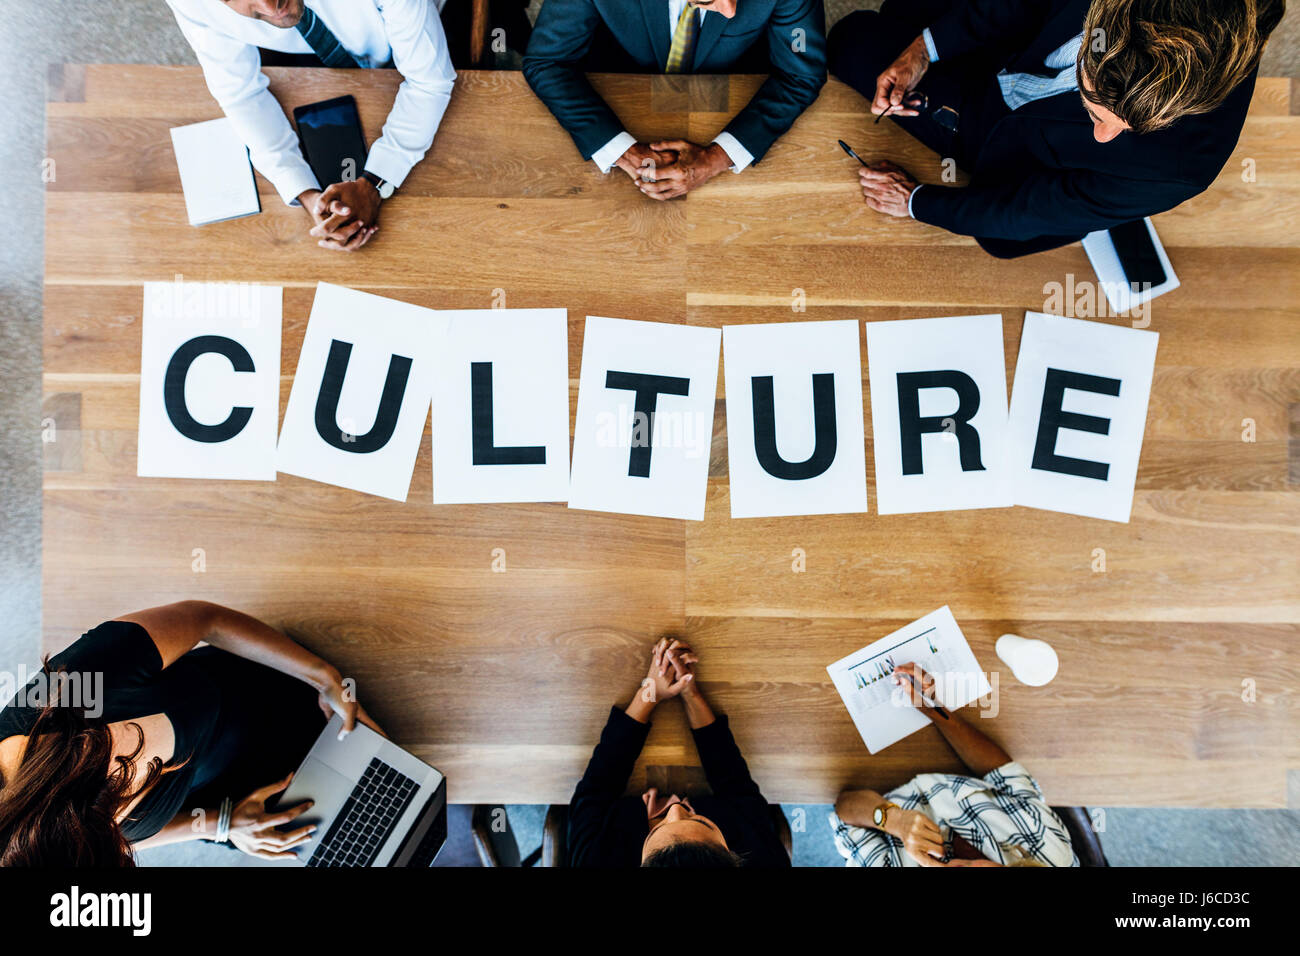 Group of business people with alphabets signs forming the word Culture on table. Top view of business people discussing - Stock Image